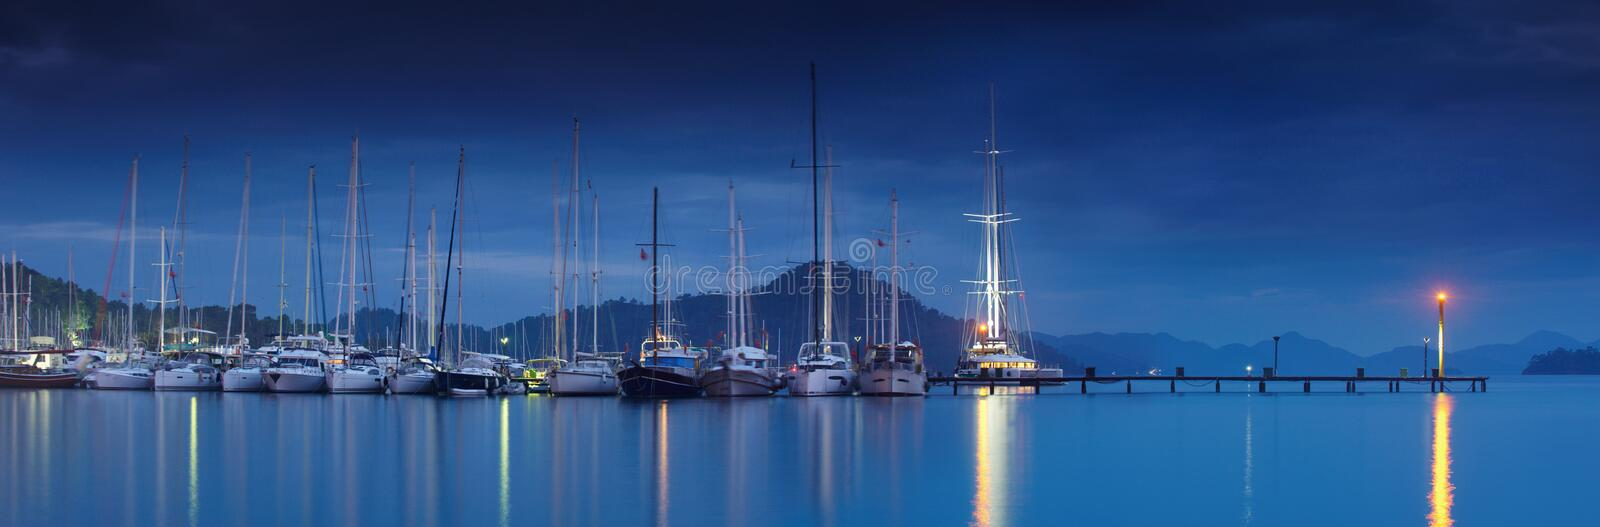 Marina at night with moored yachts royalty free stock images